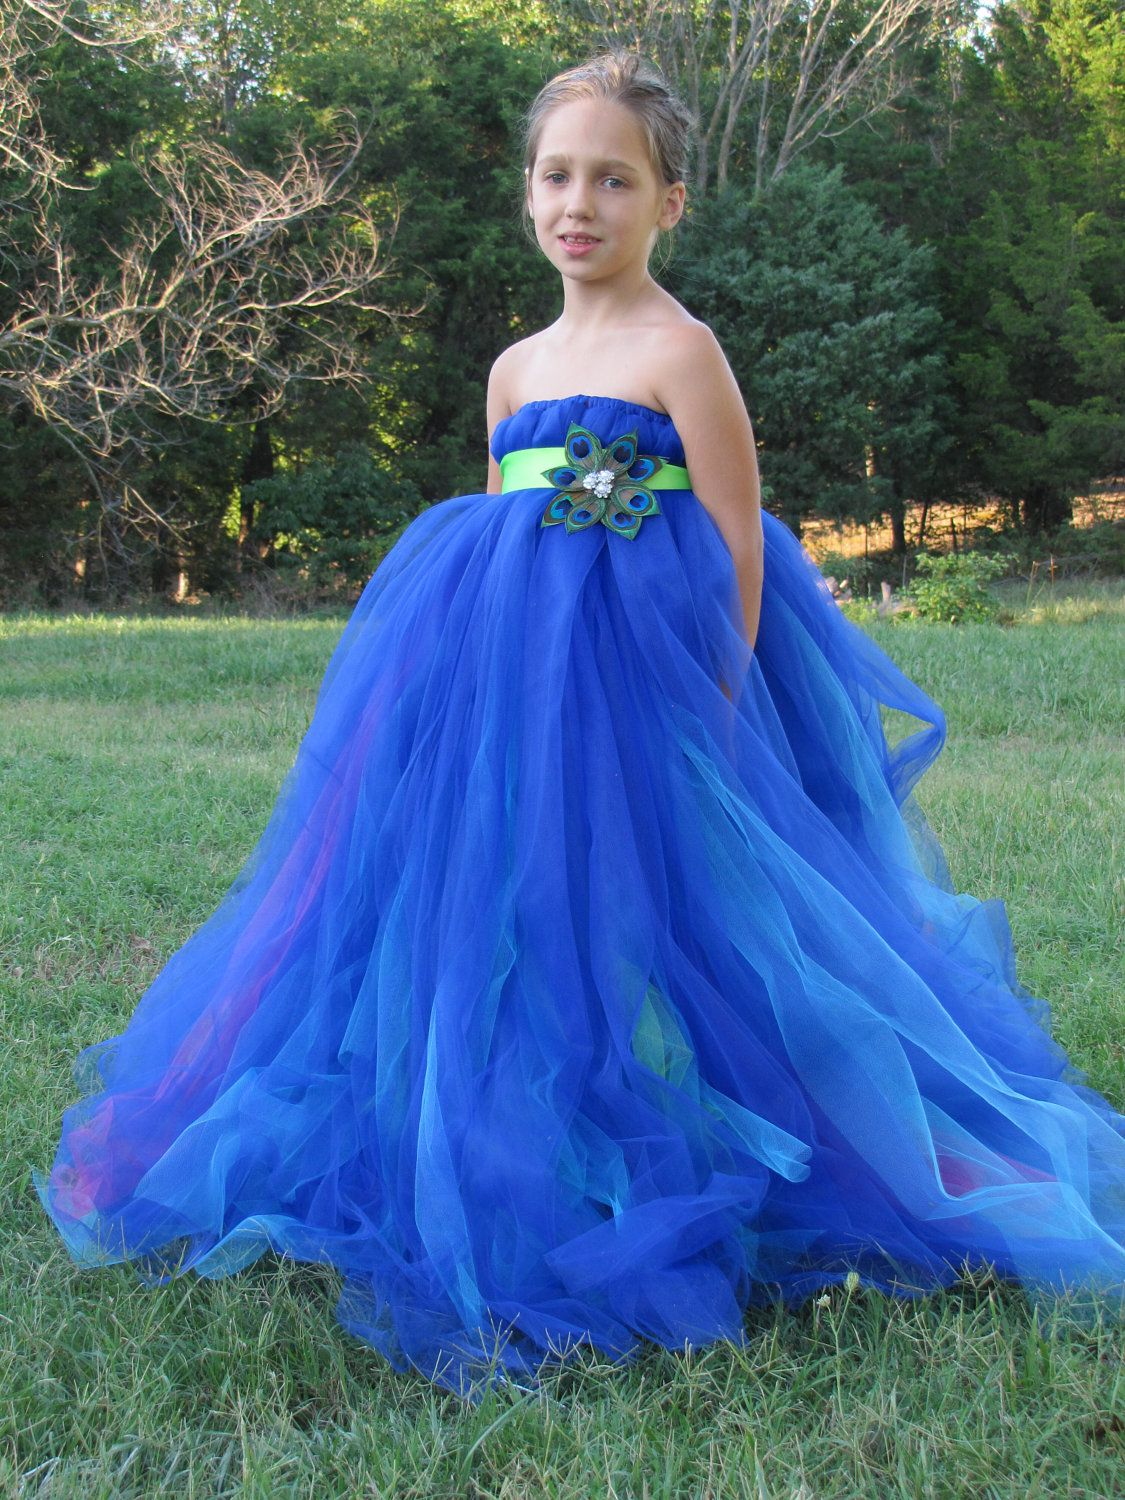 Peacock tulle flower girl dress | Queen, Except and Girls